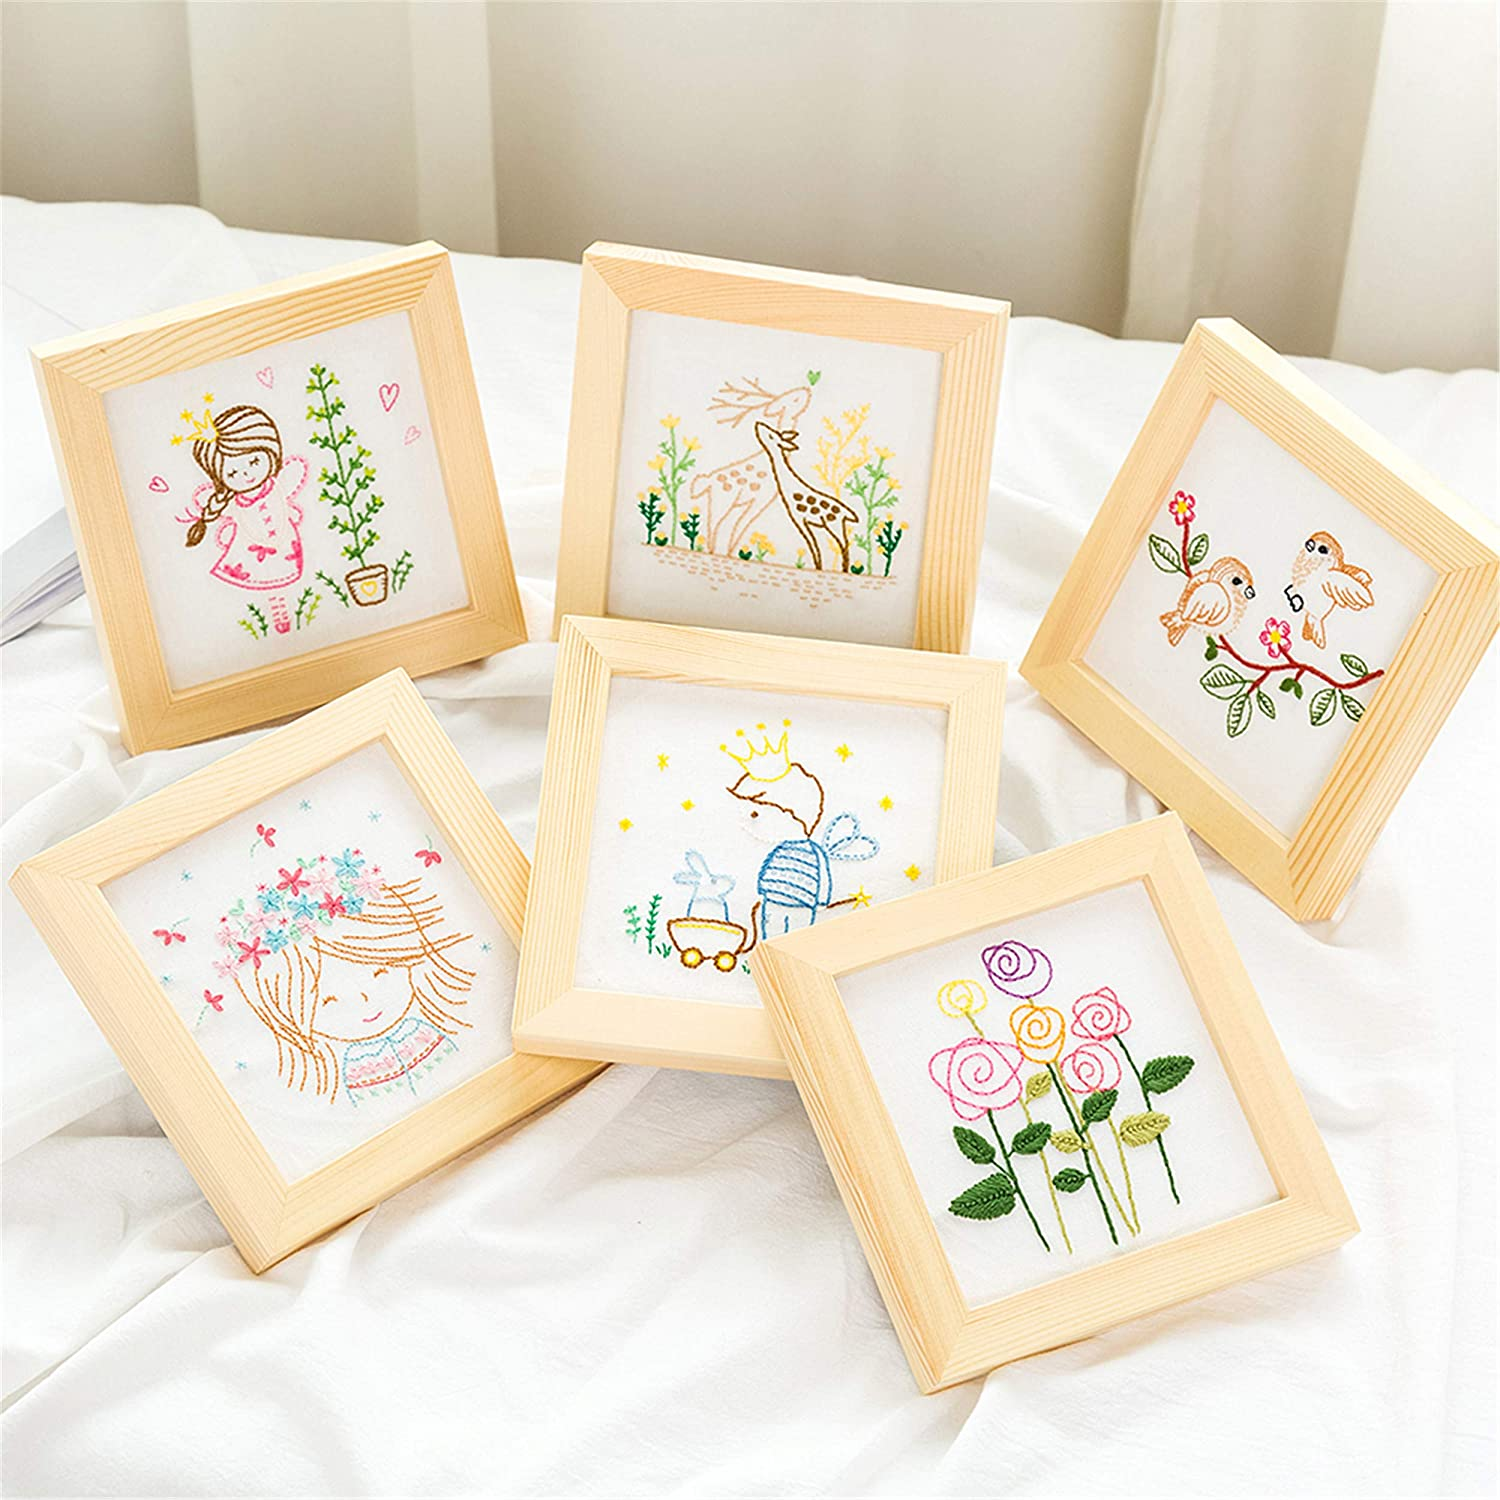 Color Threads 511182 Embroidery Cloth Full Range of Handmade Embroidery Starter Kit with Various Patterns Including Embroidery Hoop Needle and Instruction for Beginners-Birds Pattern